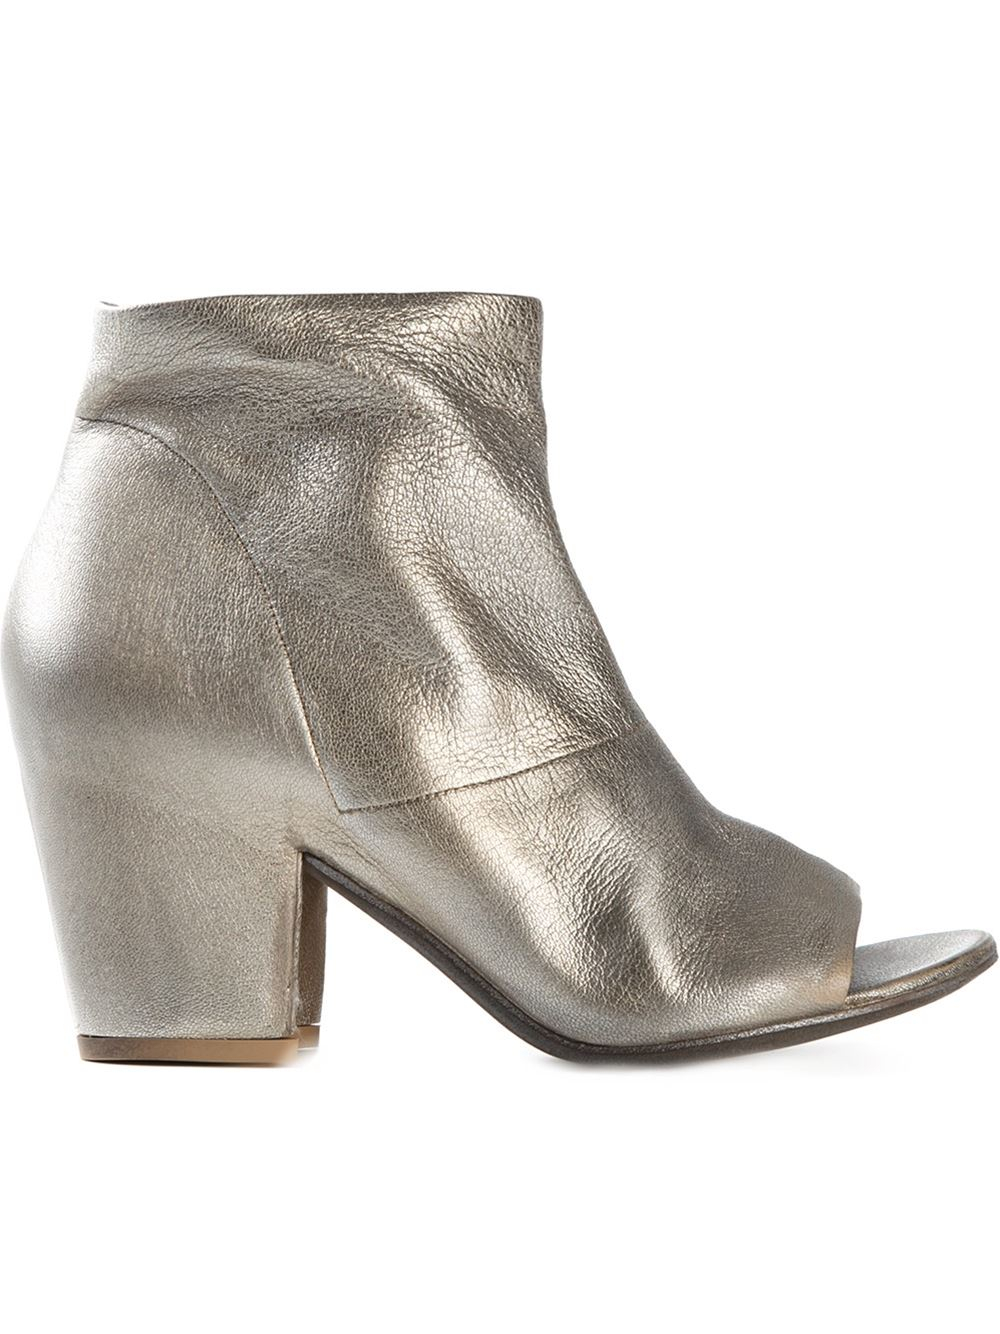 settima open toe ankle boots in gold metallic save 50